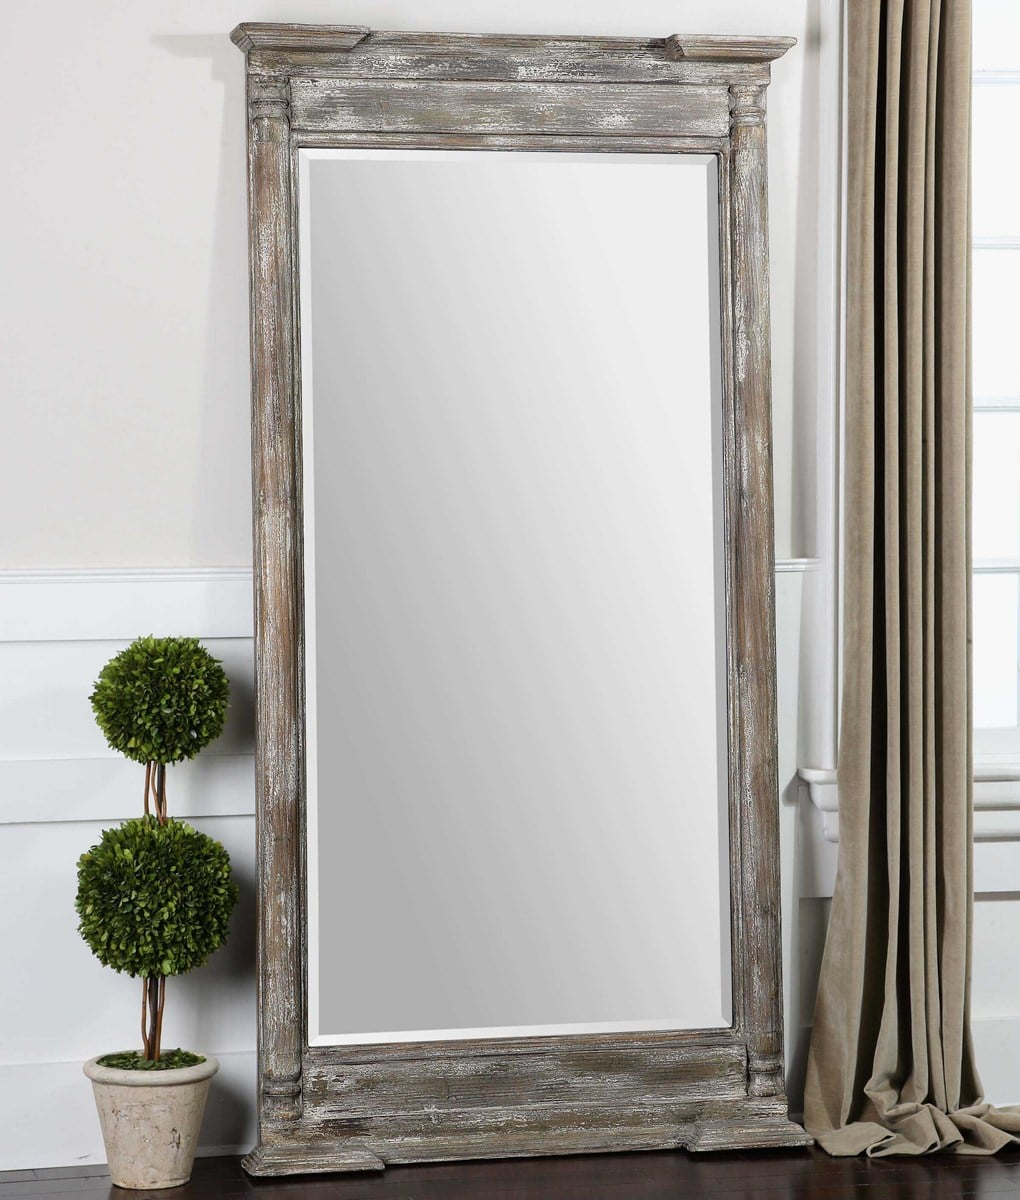 Valcellina Mirror santa barbara design center 34894-